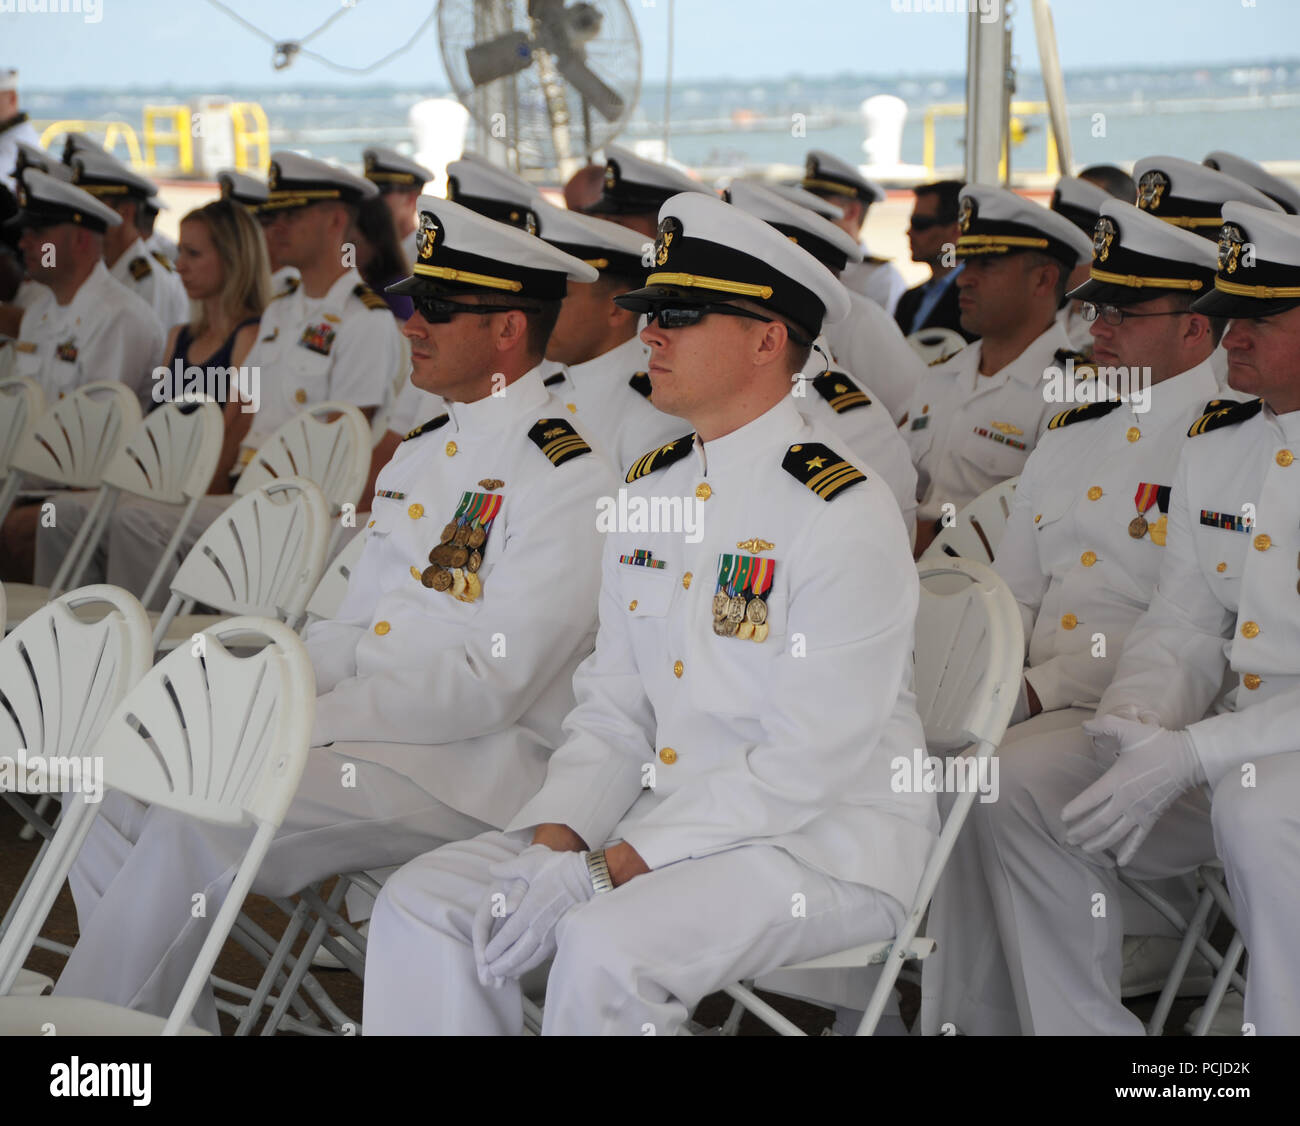 NORFOLK, Va. (Aug. 1, 2018) Sailors attend the Submarine Squadron Six change of command ceremony aboard the Virginia-class attack submarine USS Washington (SSN 787) in Norfolk, Va. Capt. Martin Muckian relieved Hartsfield as Commander, Submarine Squadron Six.  (U.S. Navy photo by Chief Mass Communication Specialist Darryl Wood/Released) - Stock Image